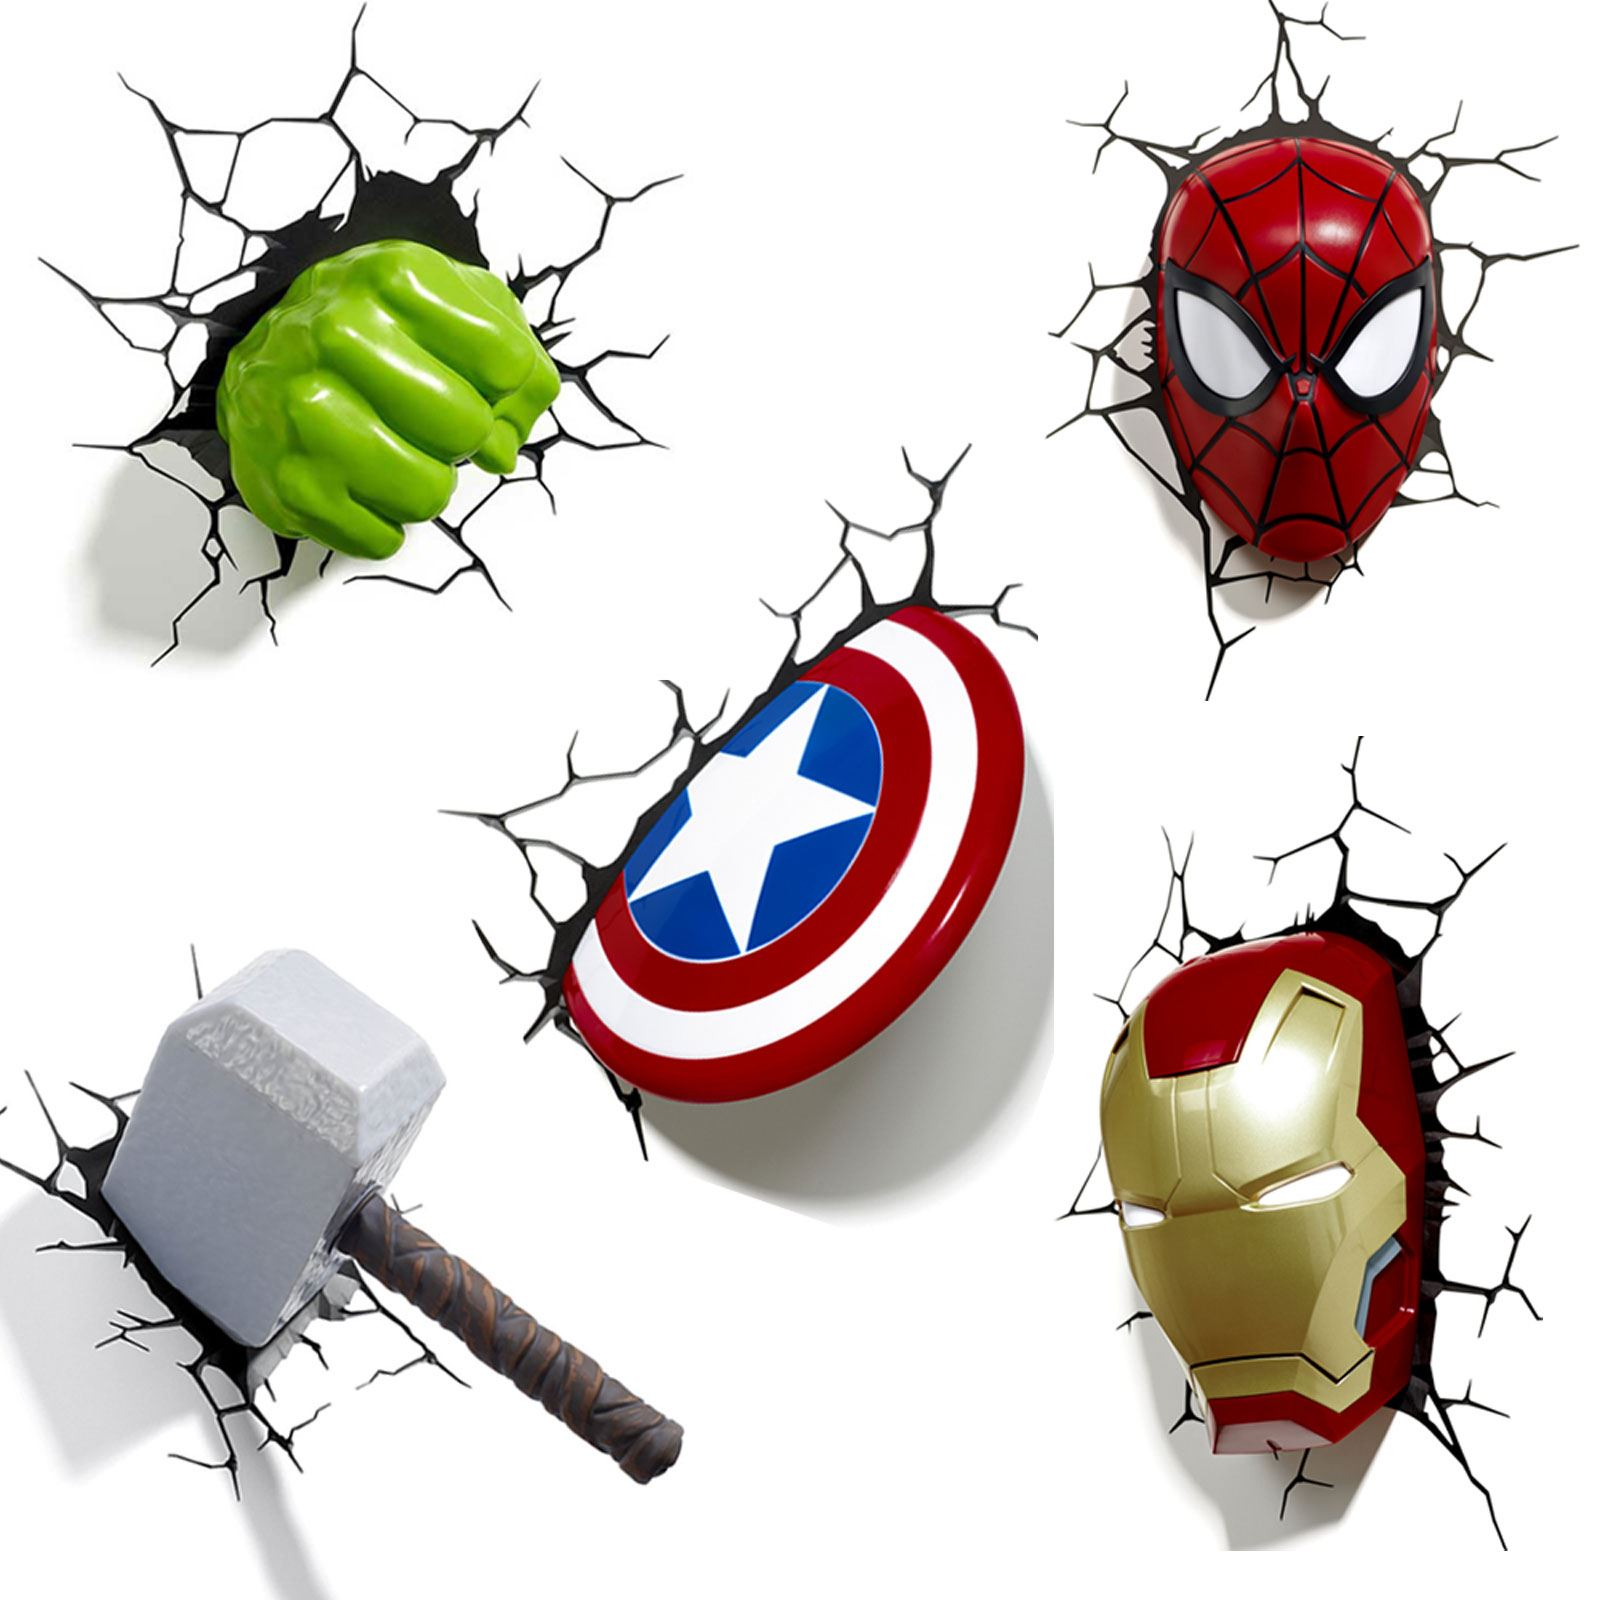 3d Wall Art Night Light Marvel Avengers 3d Wall Light Hulk Iron Man Captain